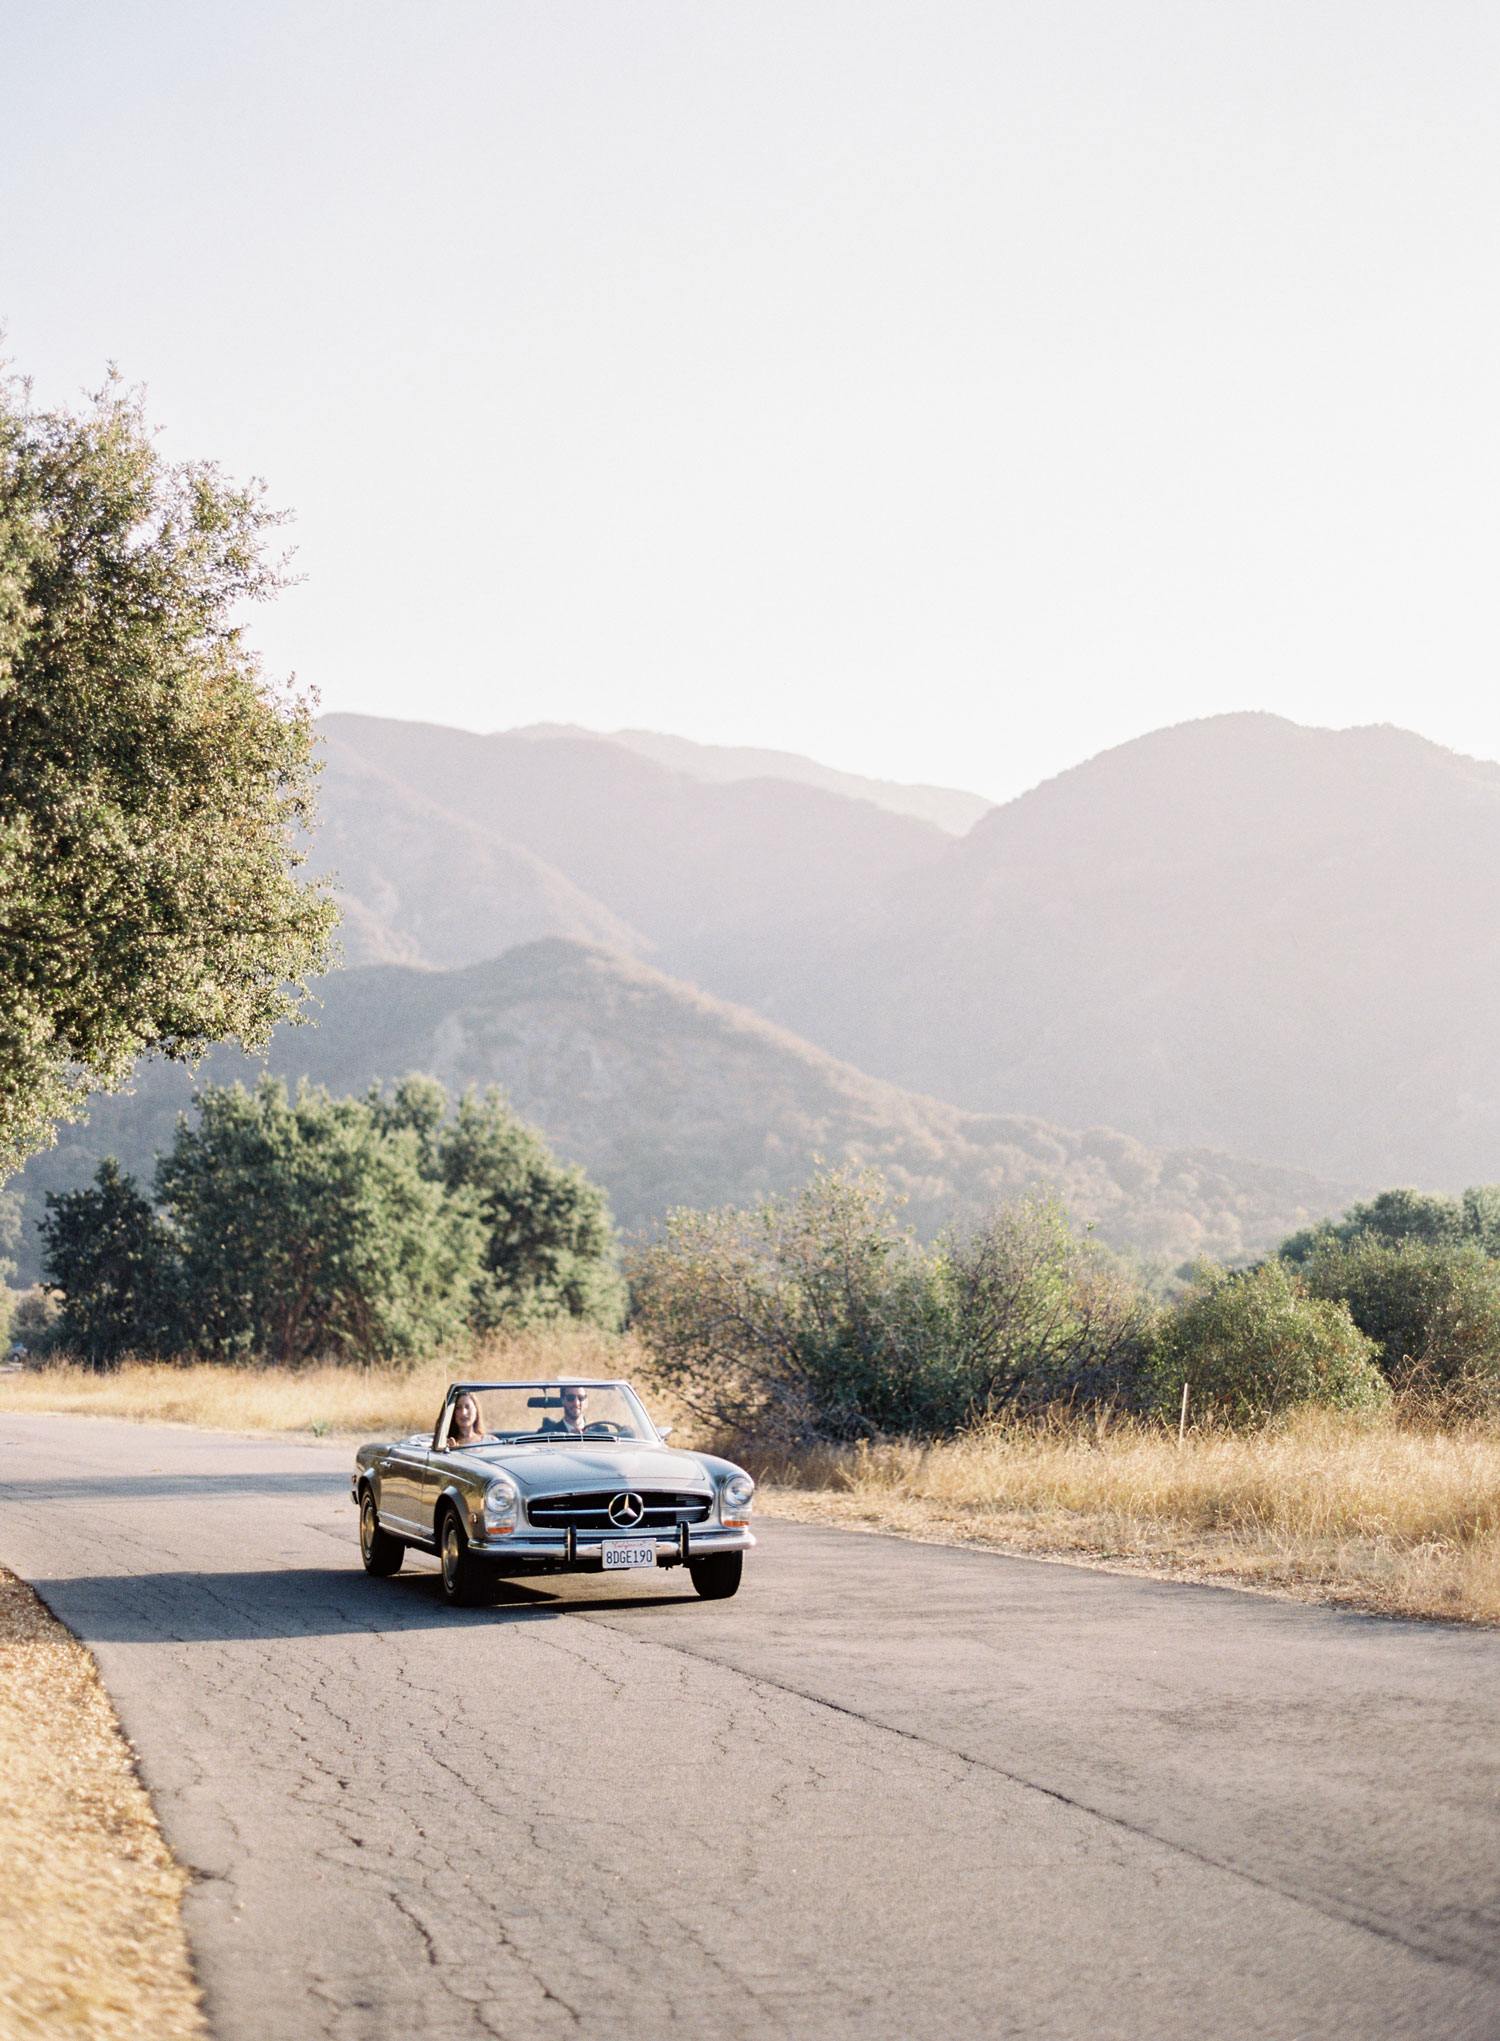 Engagement shoot photo ideas malibu classic car vintage mustang convertible driving in car malibu state park